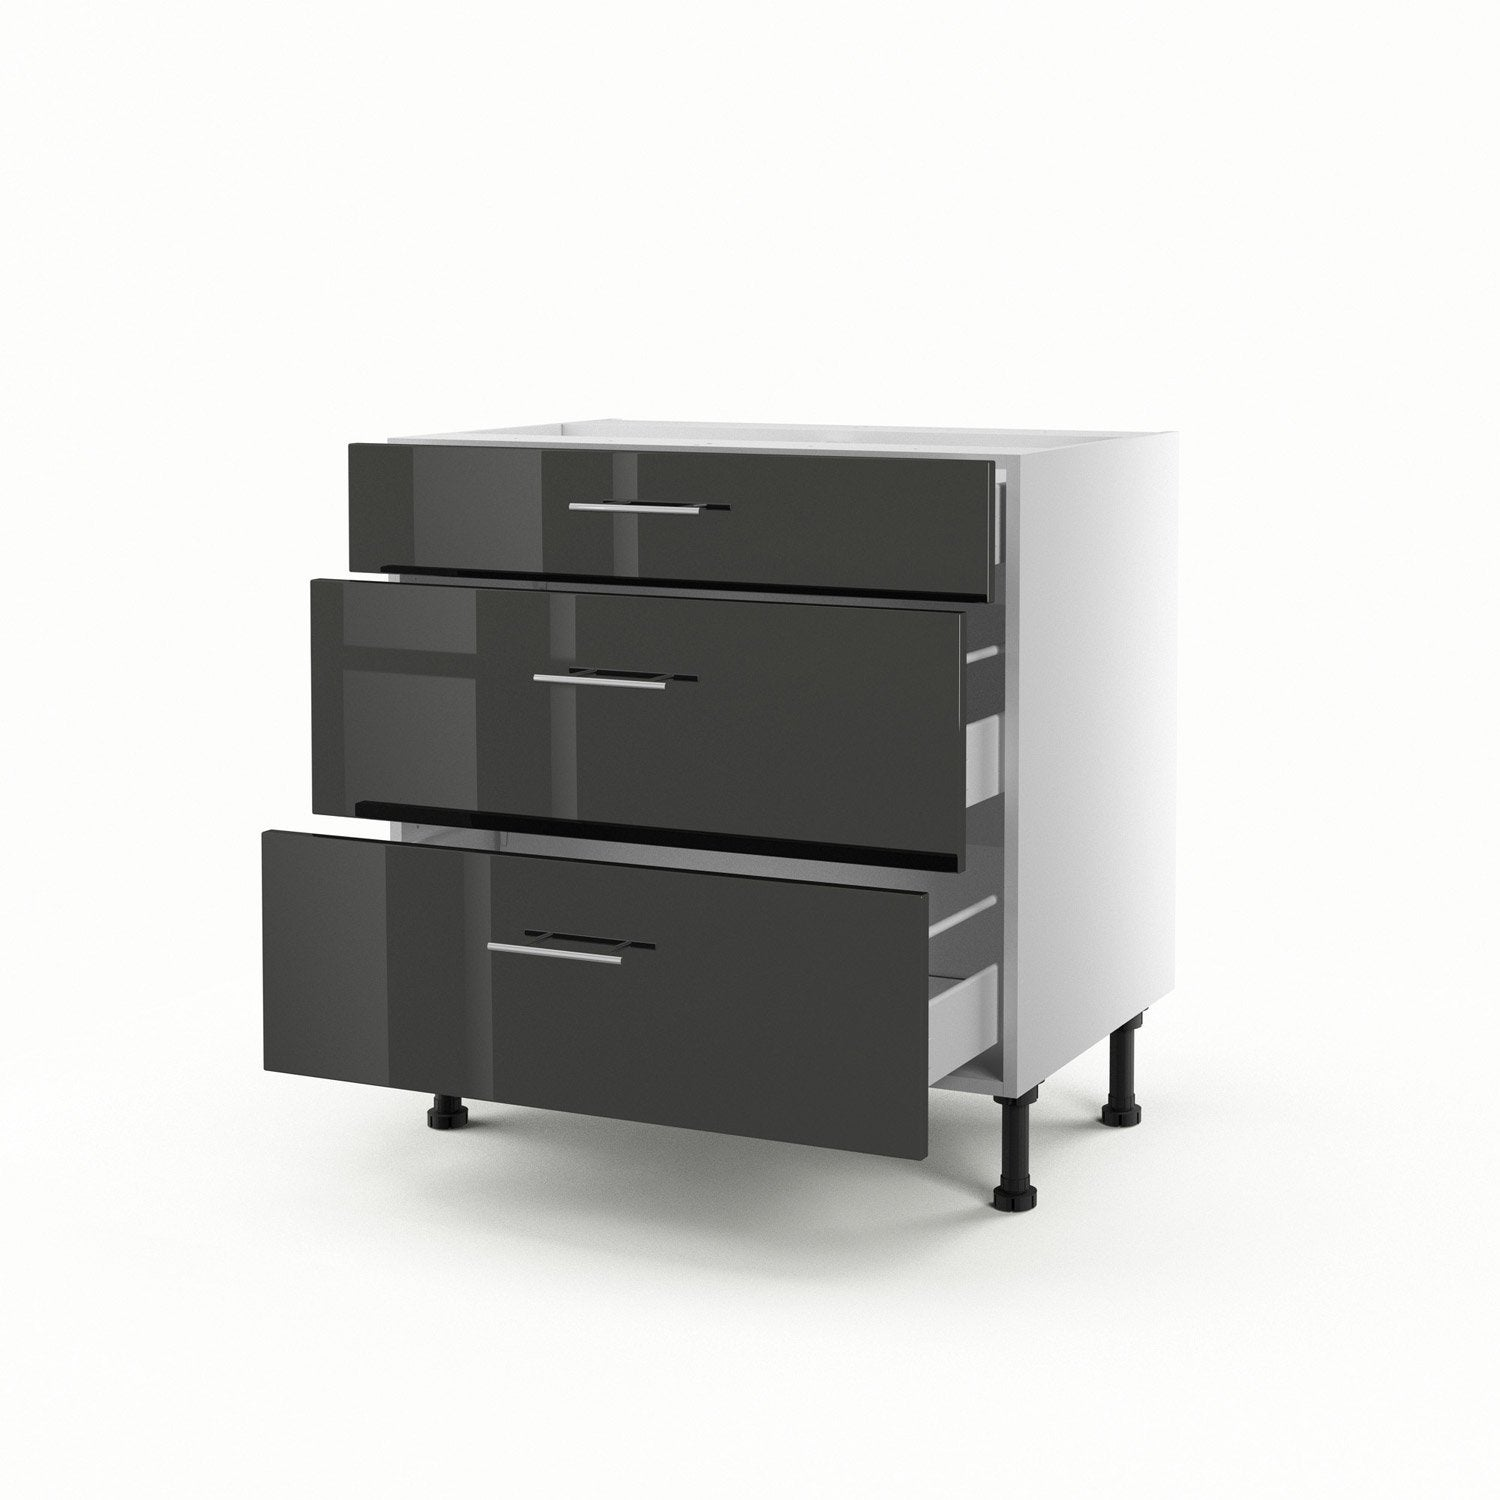 meuble de cuisine bas gris 3 tiroirs rio x x p. Black Bedroom Furniture Sets. Home Design Ideas